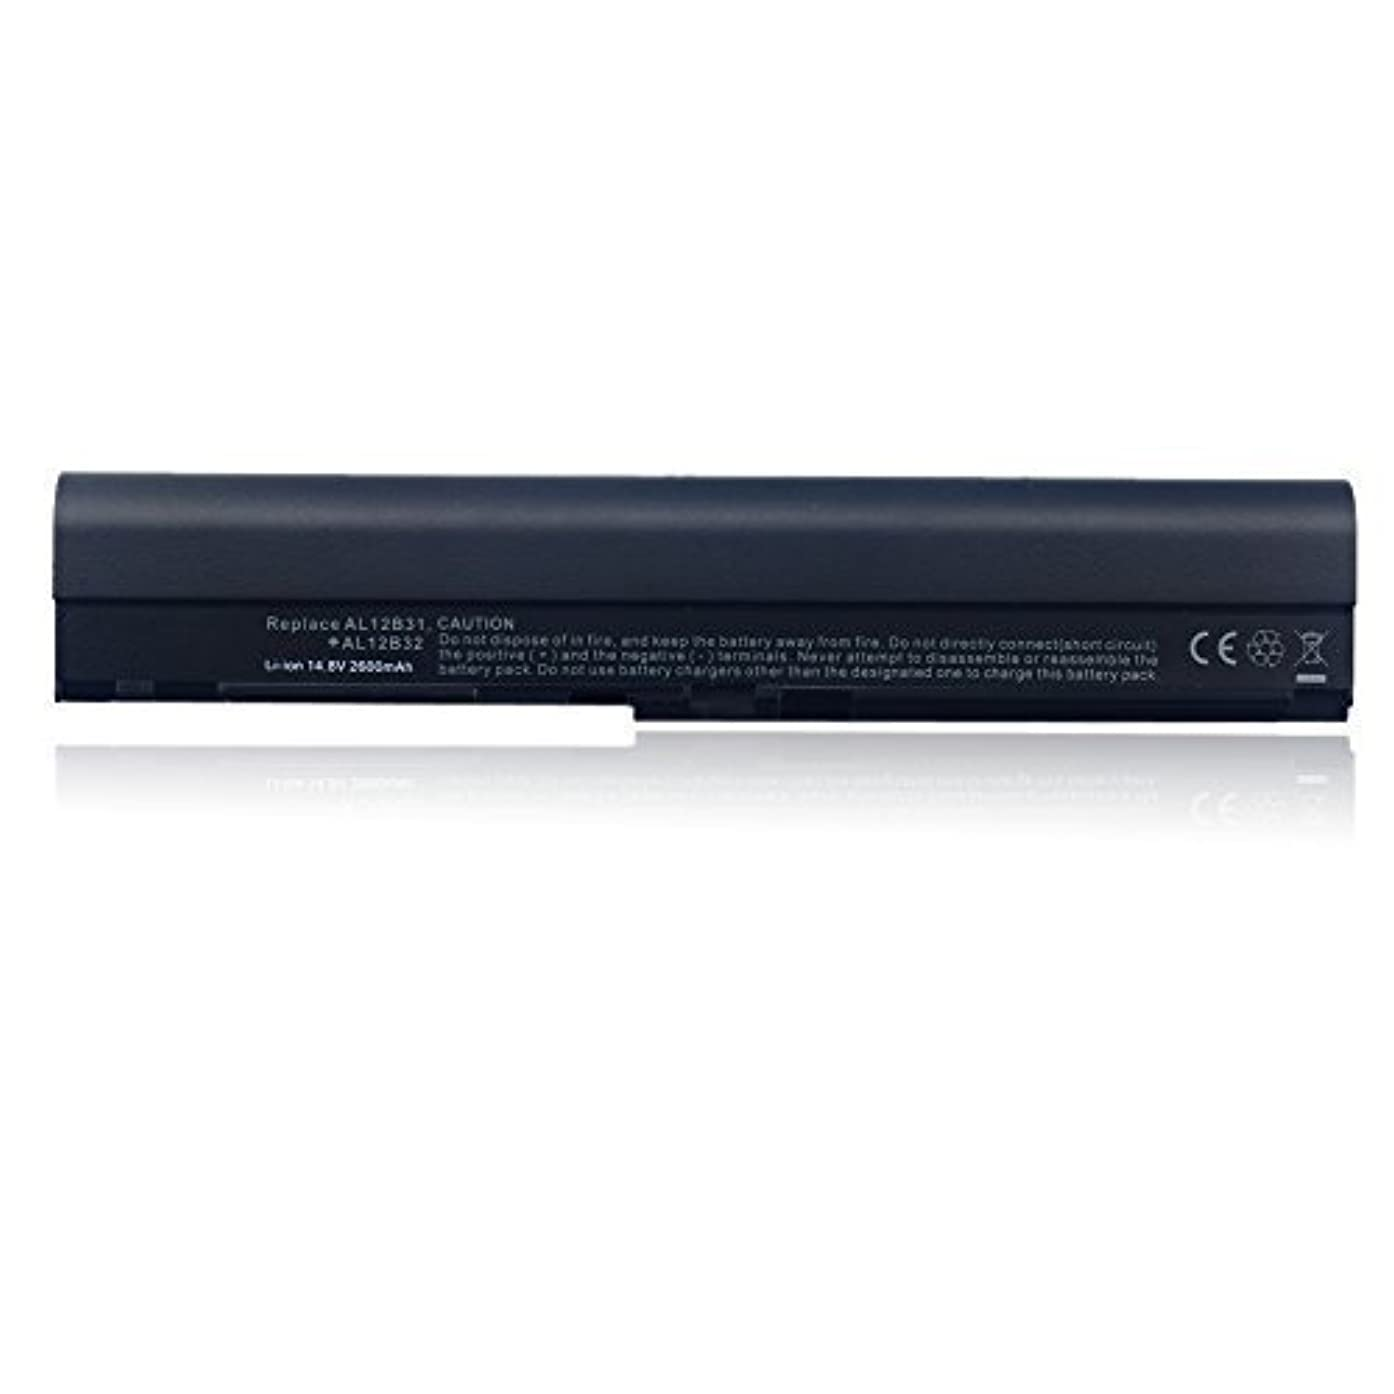 Bay Valley Parts Laptop Battery AL12B31 AL12B32 AL12B72 AL12X32 Li-Ion Battery 4-Cell Pack for Acer Aspire V5-171 Aspire One 725 756 TravelMate B113-E B113-M Laptop/Netbook